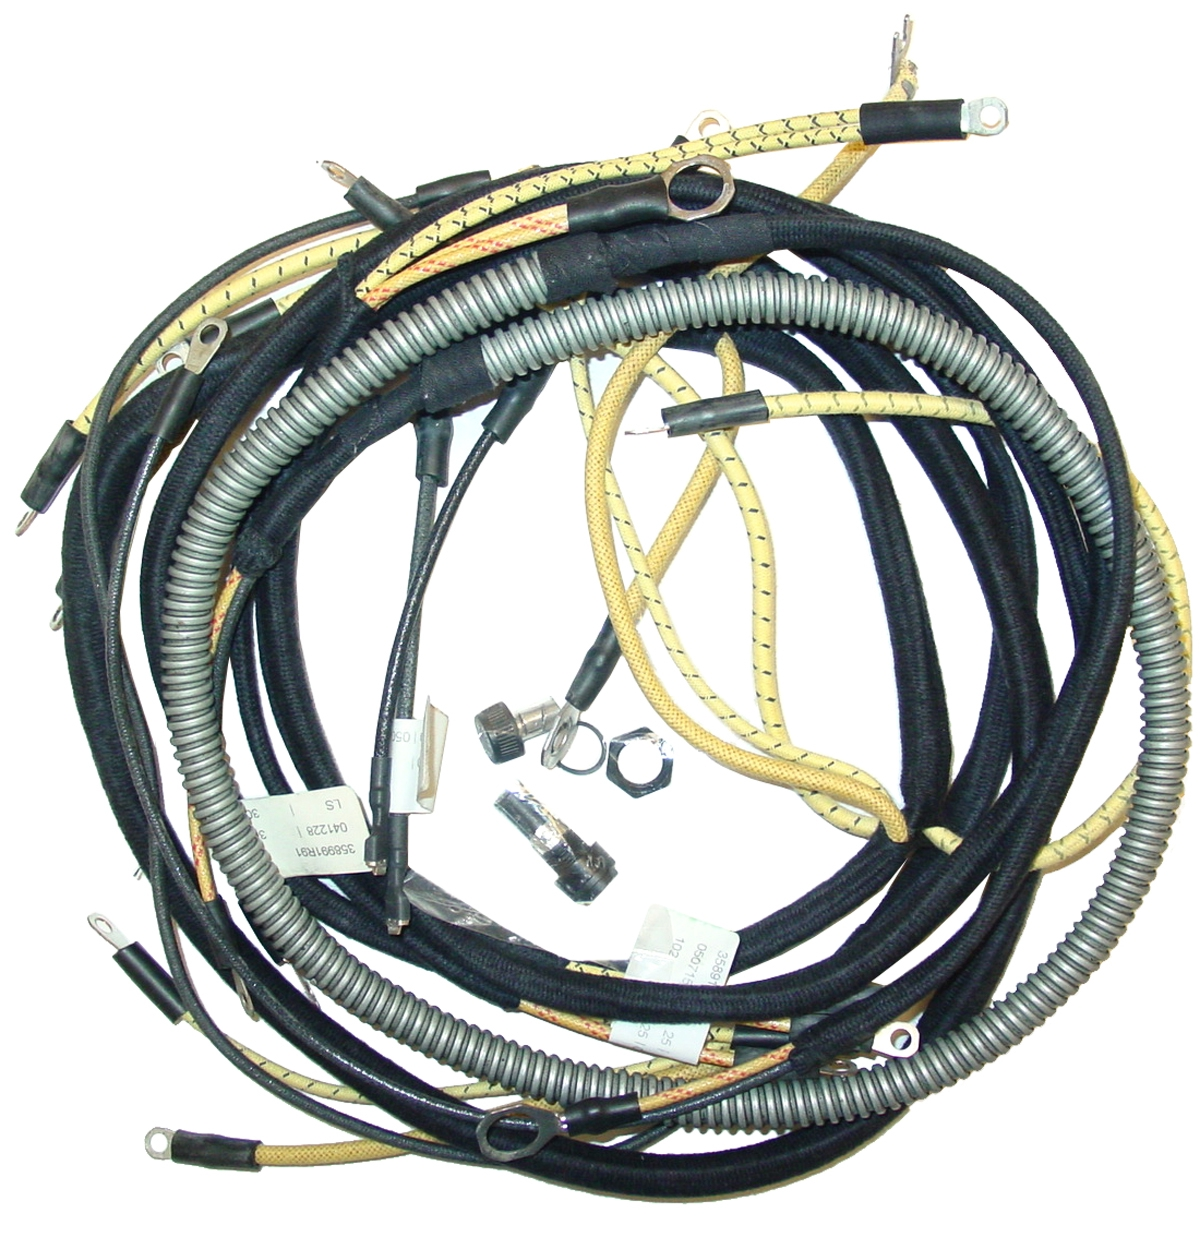 Case Wiring Harness Diagram Online Snapper Lawn Mower Ih Parts Tractor 621b Transmission